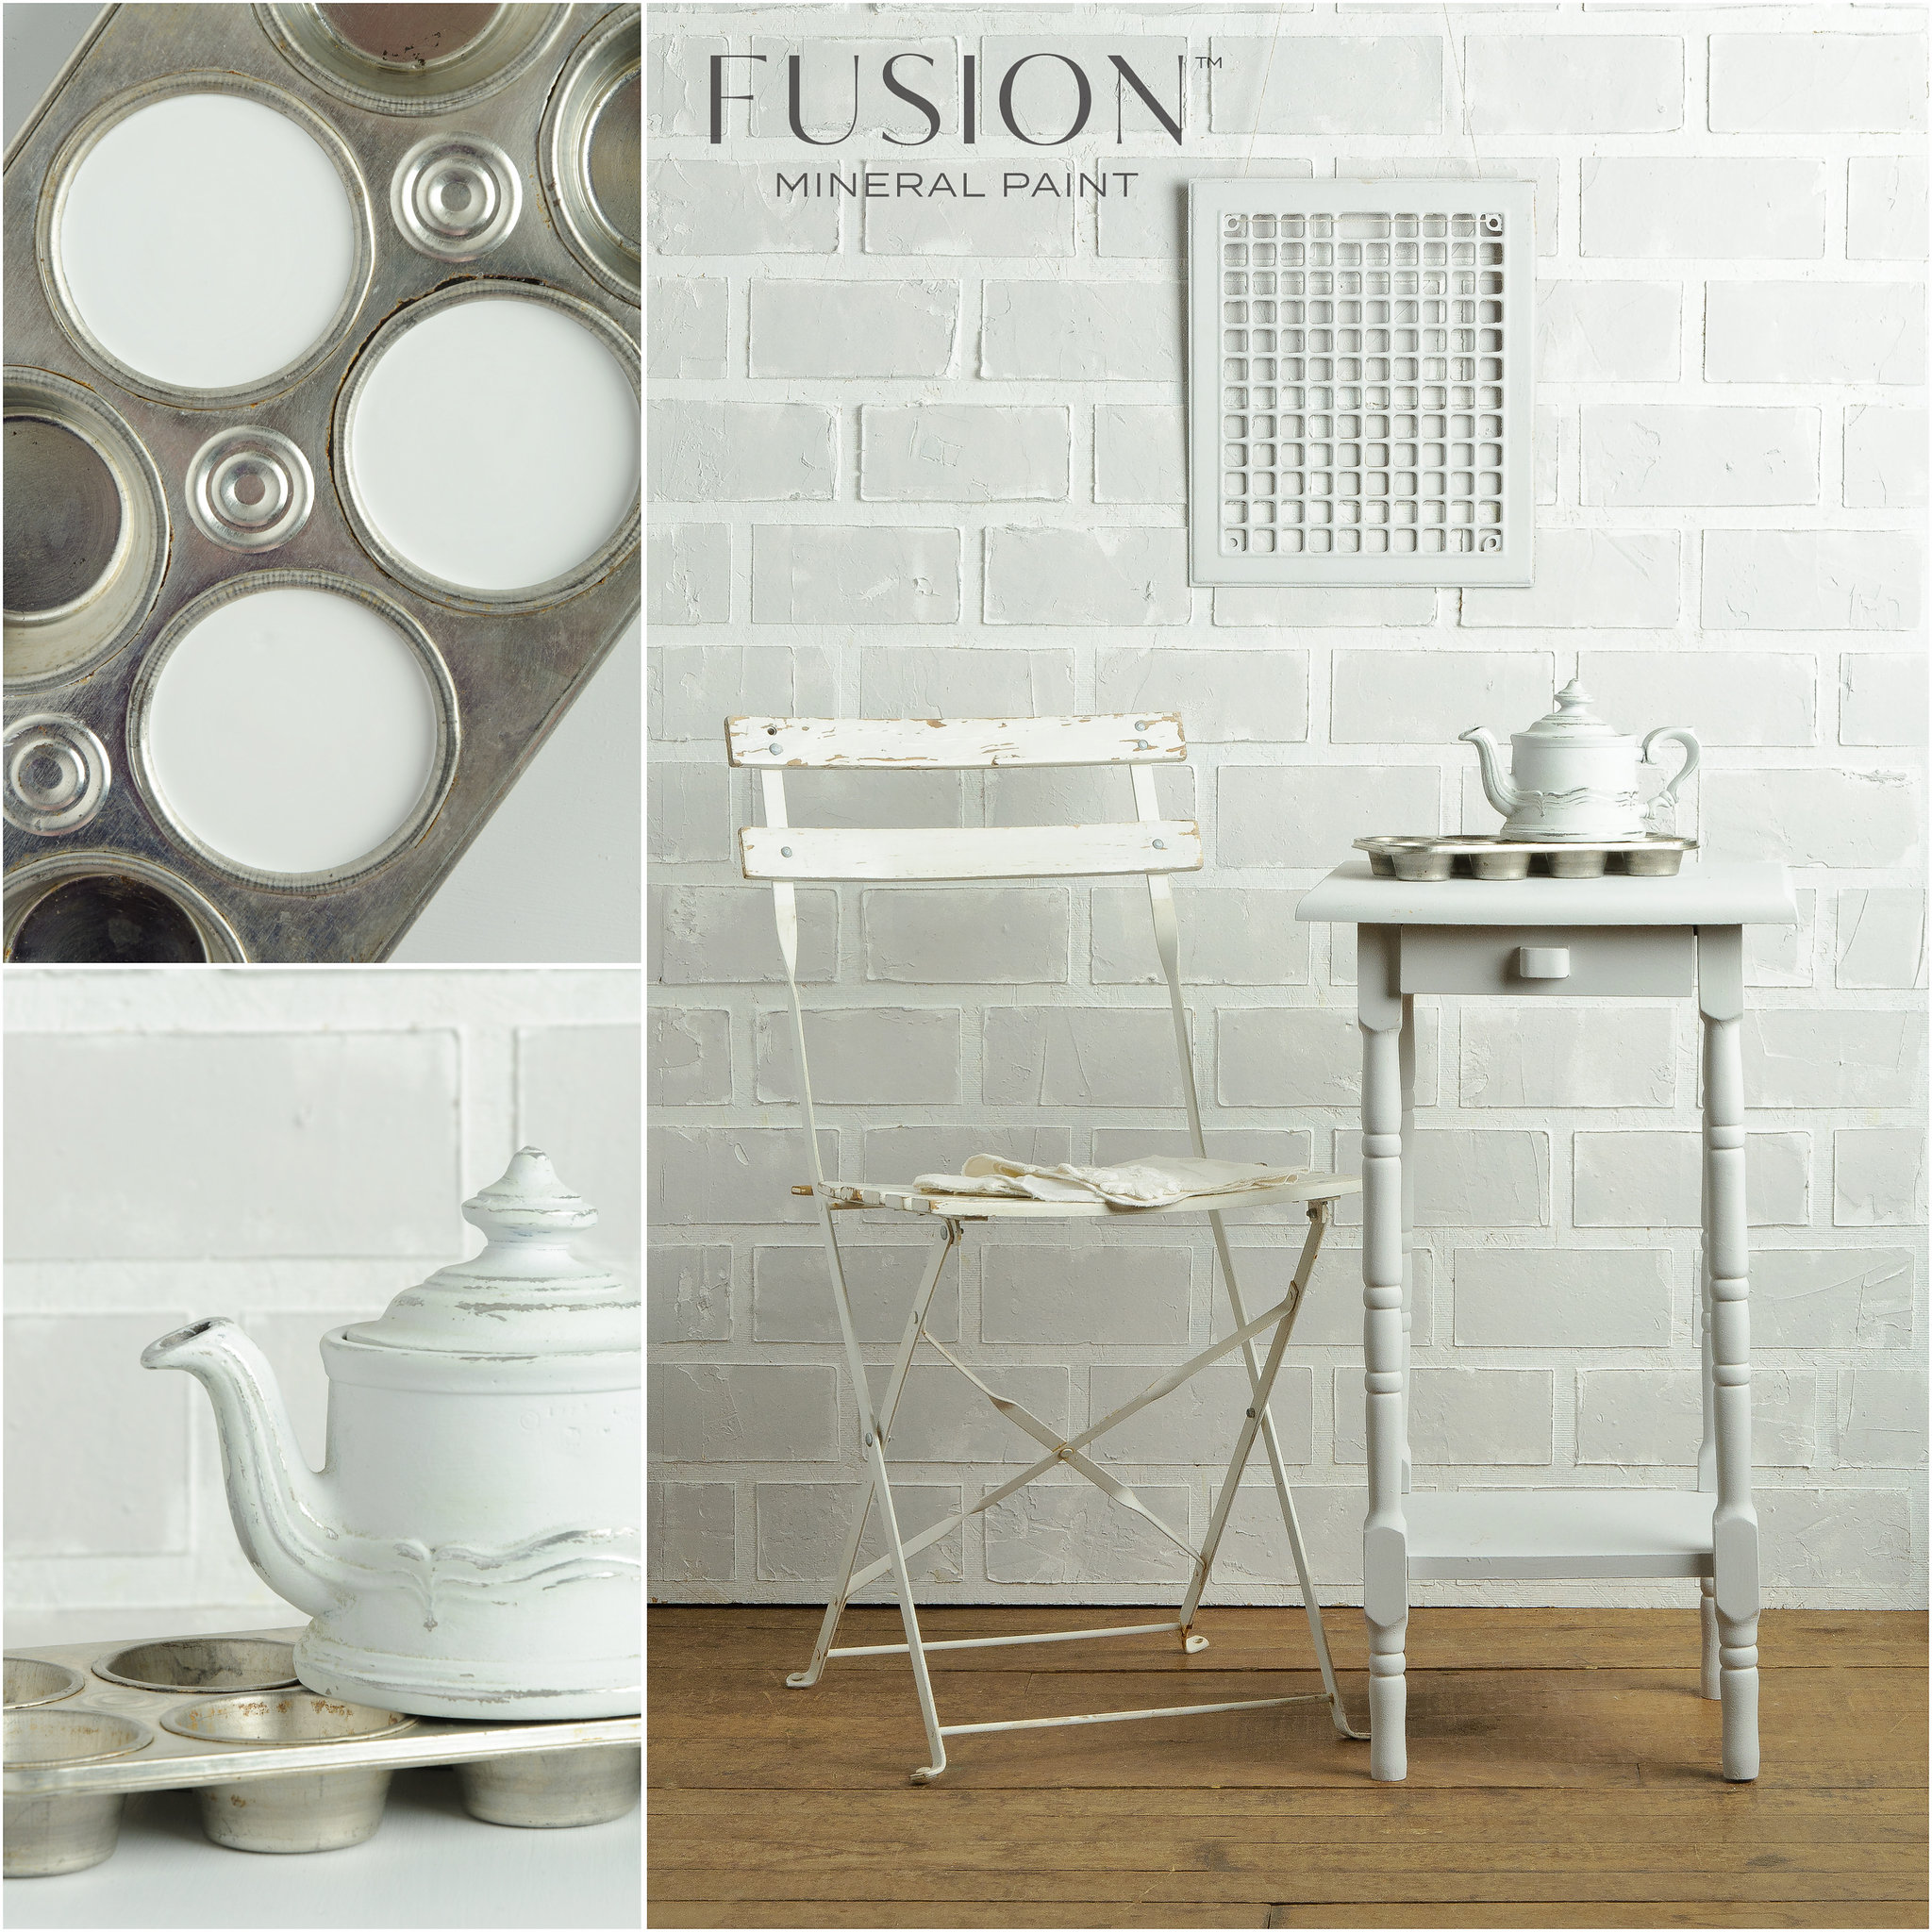 Table and Teapot painted in Lamp White Fusion Mineral Paint